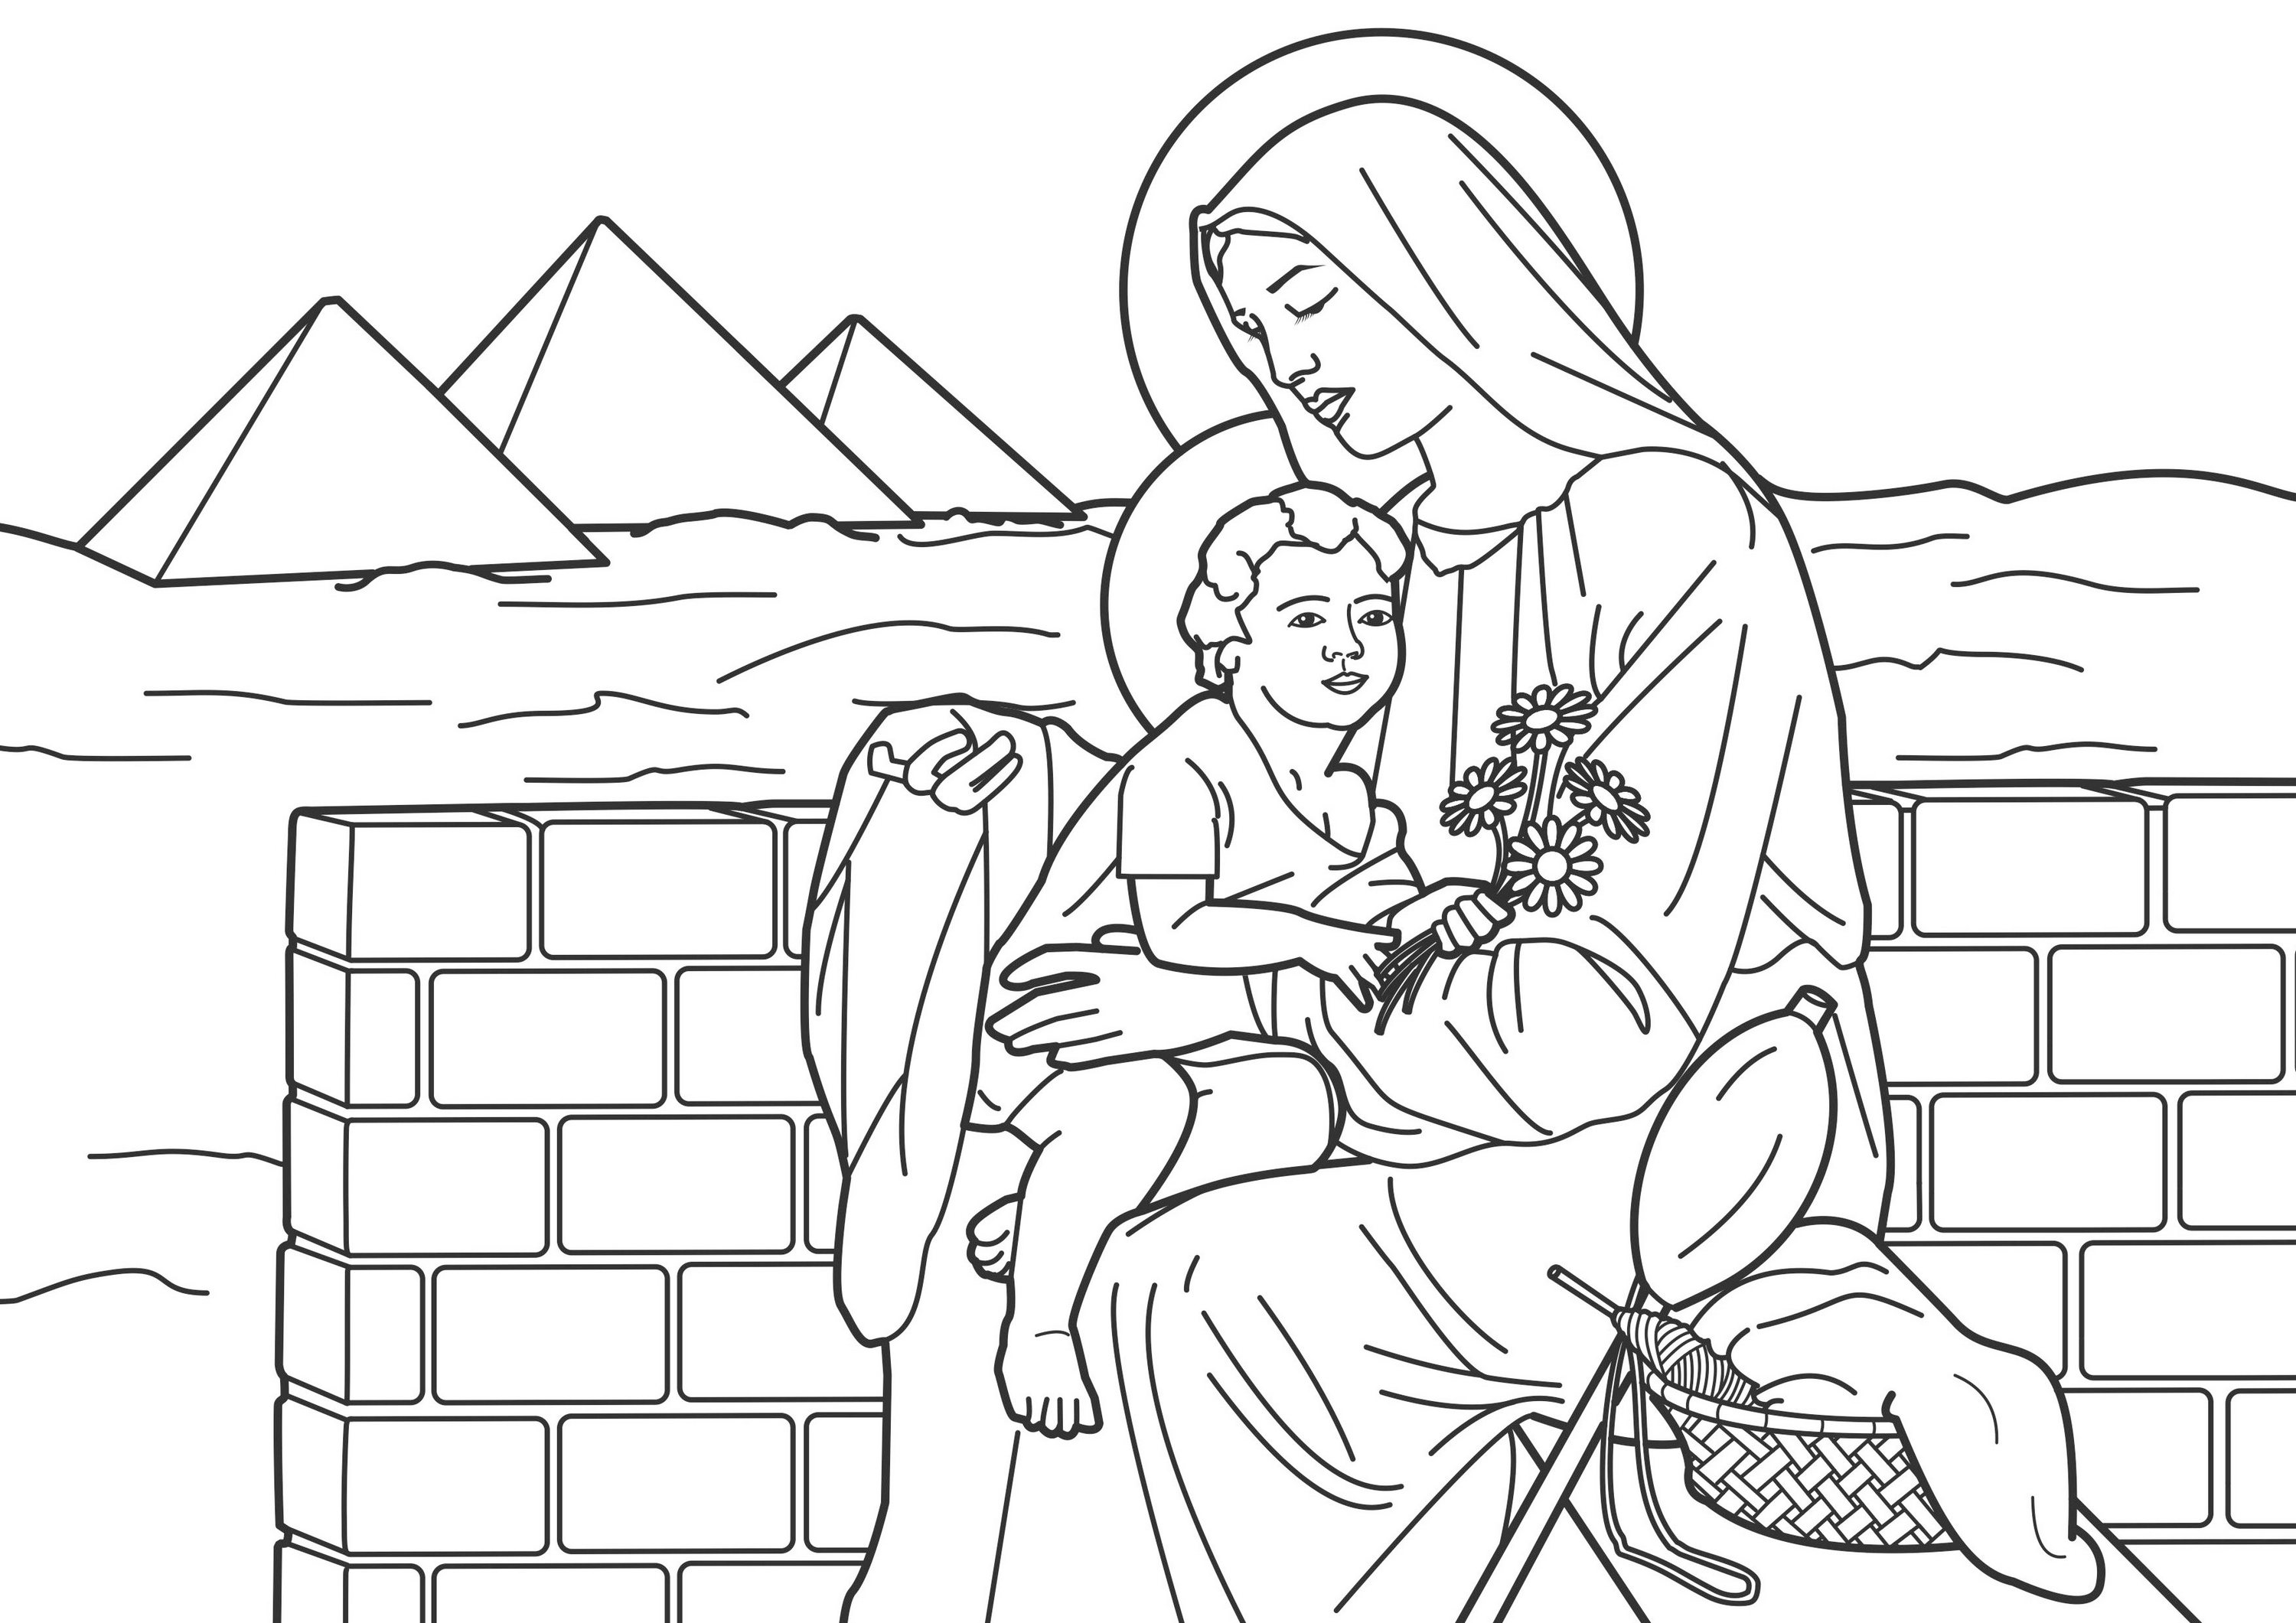 virgin-mary-coloring-book-printable